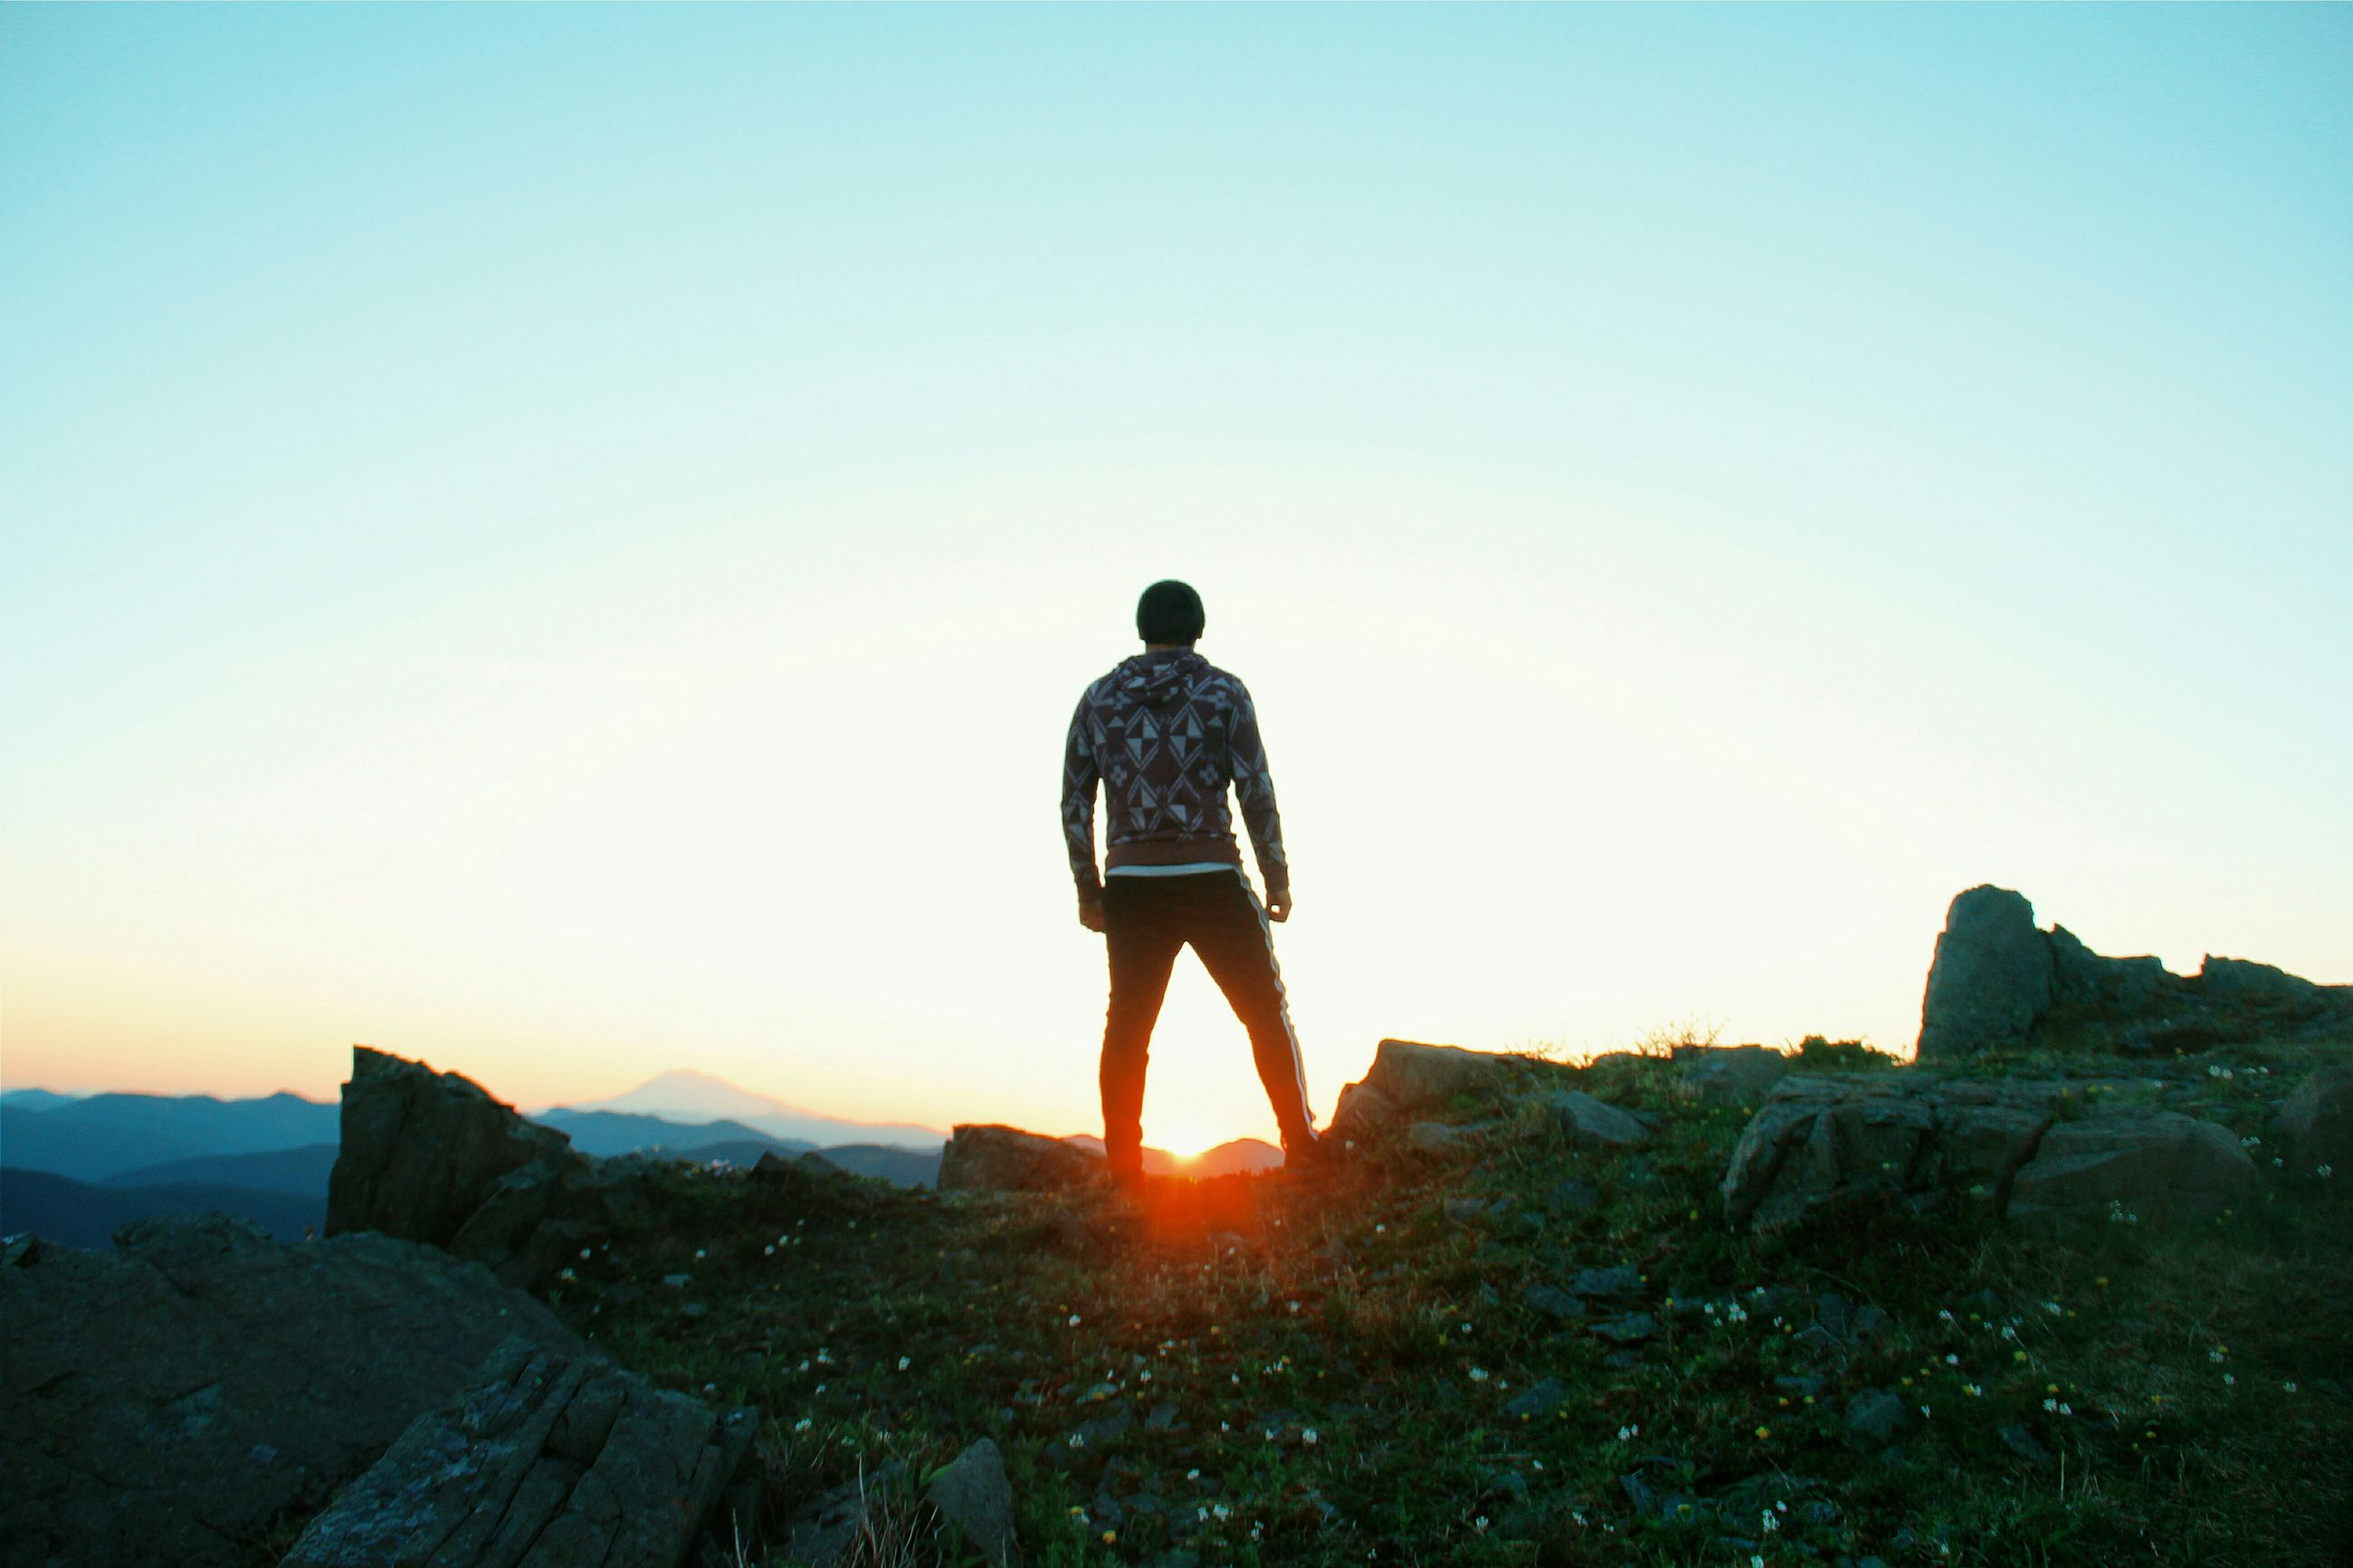 clear sky, copy space, standing, rear view, lifestyles, full length, leisure activity, men, tranquility, rock - object, tranquil scene, beauty in nature, nature, scenics, landscape, casual clothing, person, getting away from it all